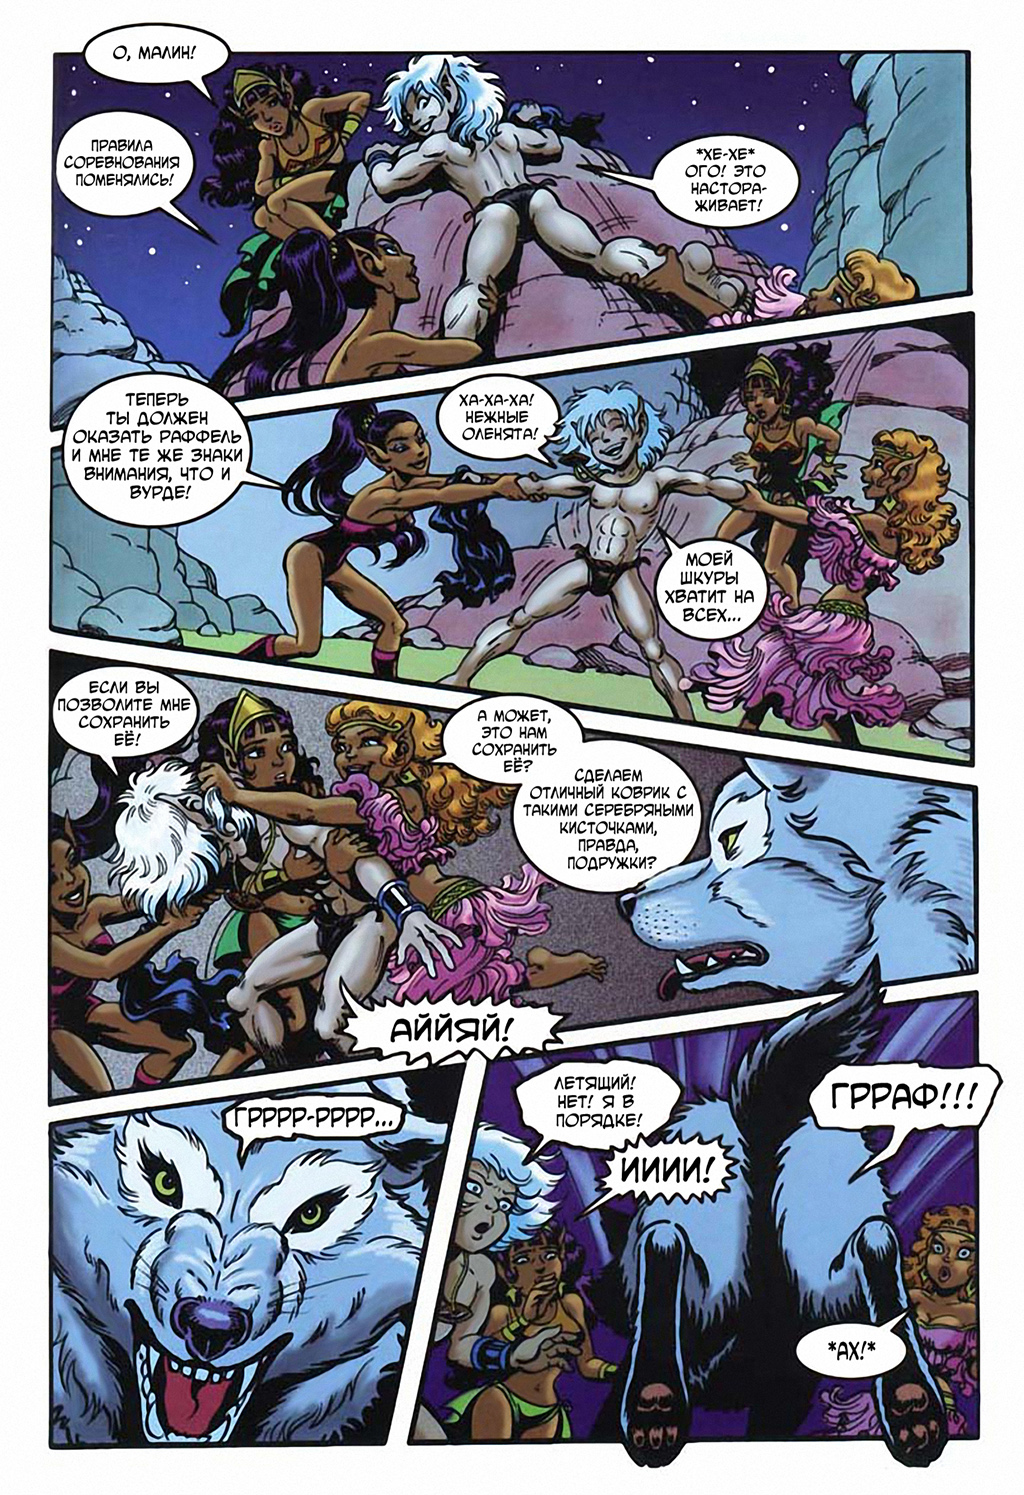 http://img.drawnstories.ru/img/Warp-Graphics/ElfQuest/In-All-But-Blood/In-All-But-Blood-001/058.jpg